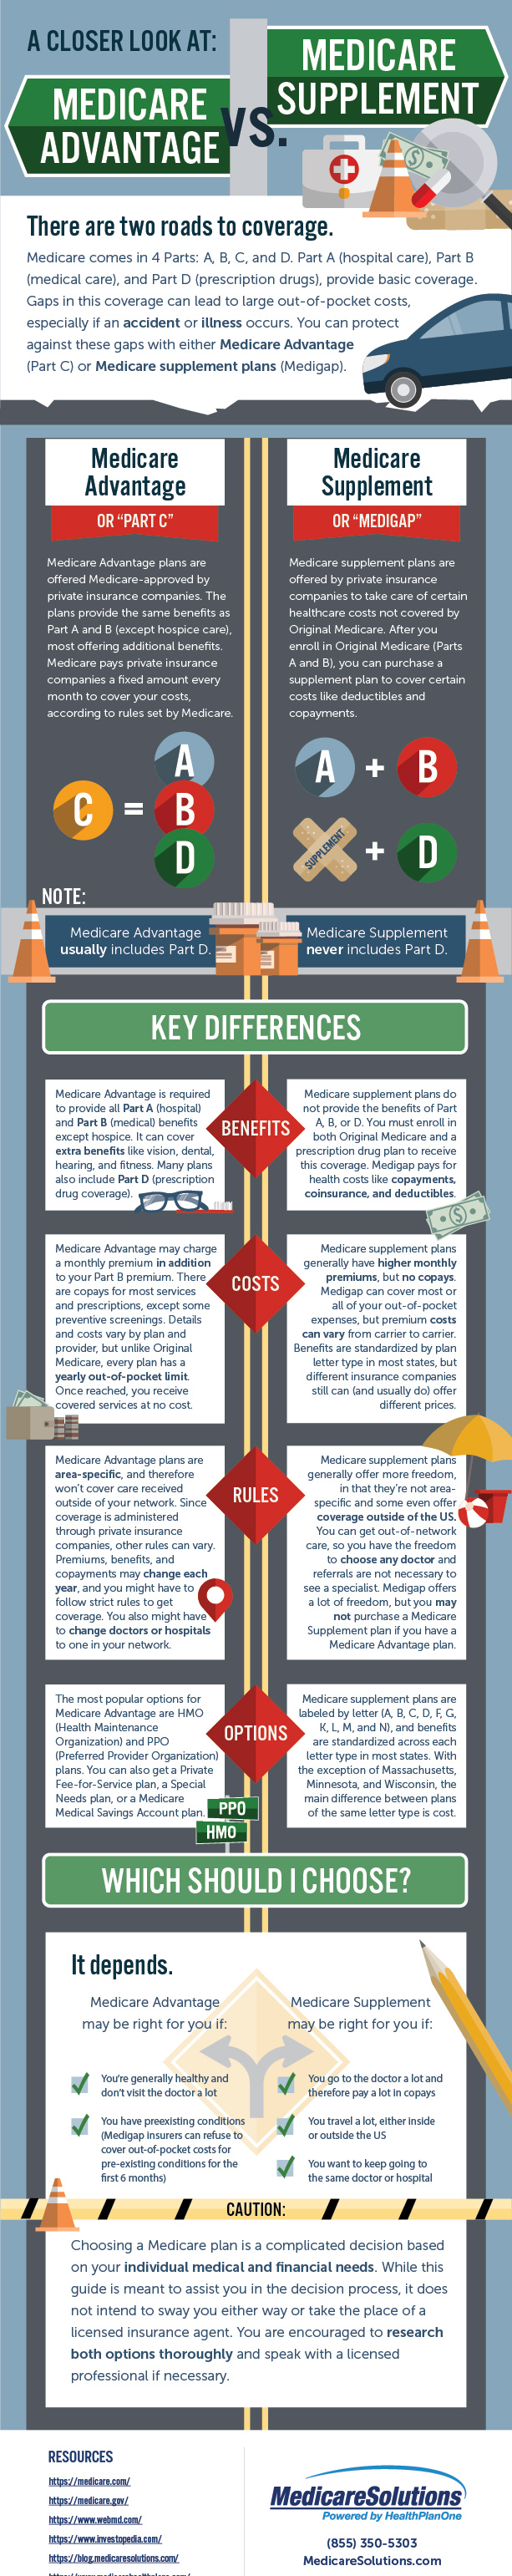 Medicare Advantage compared to Medicare Supplement infographic